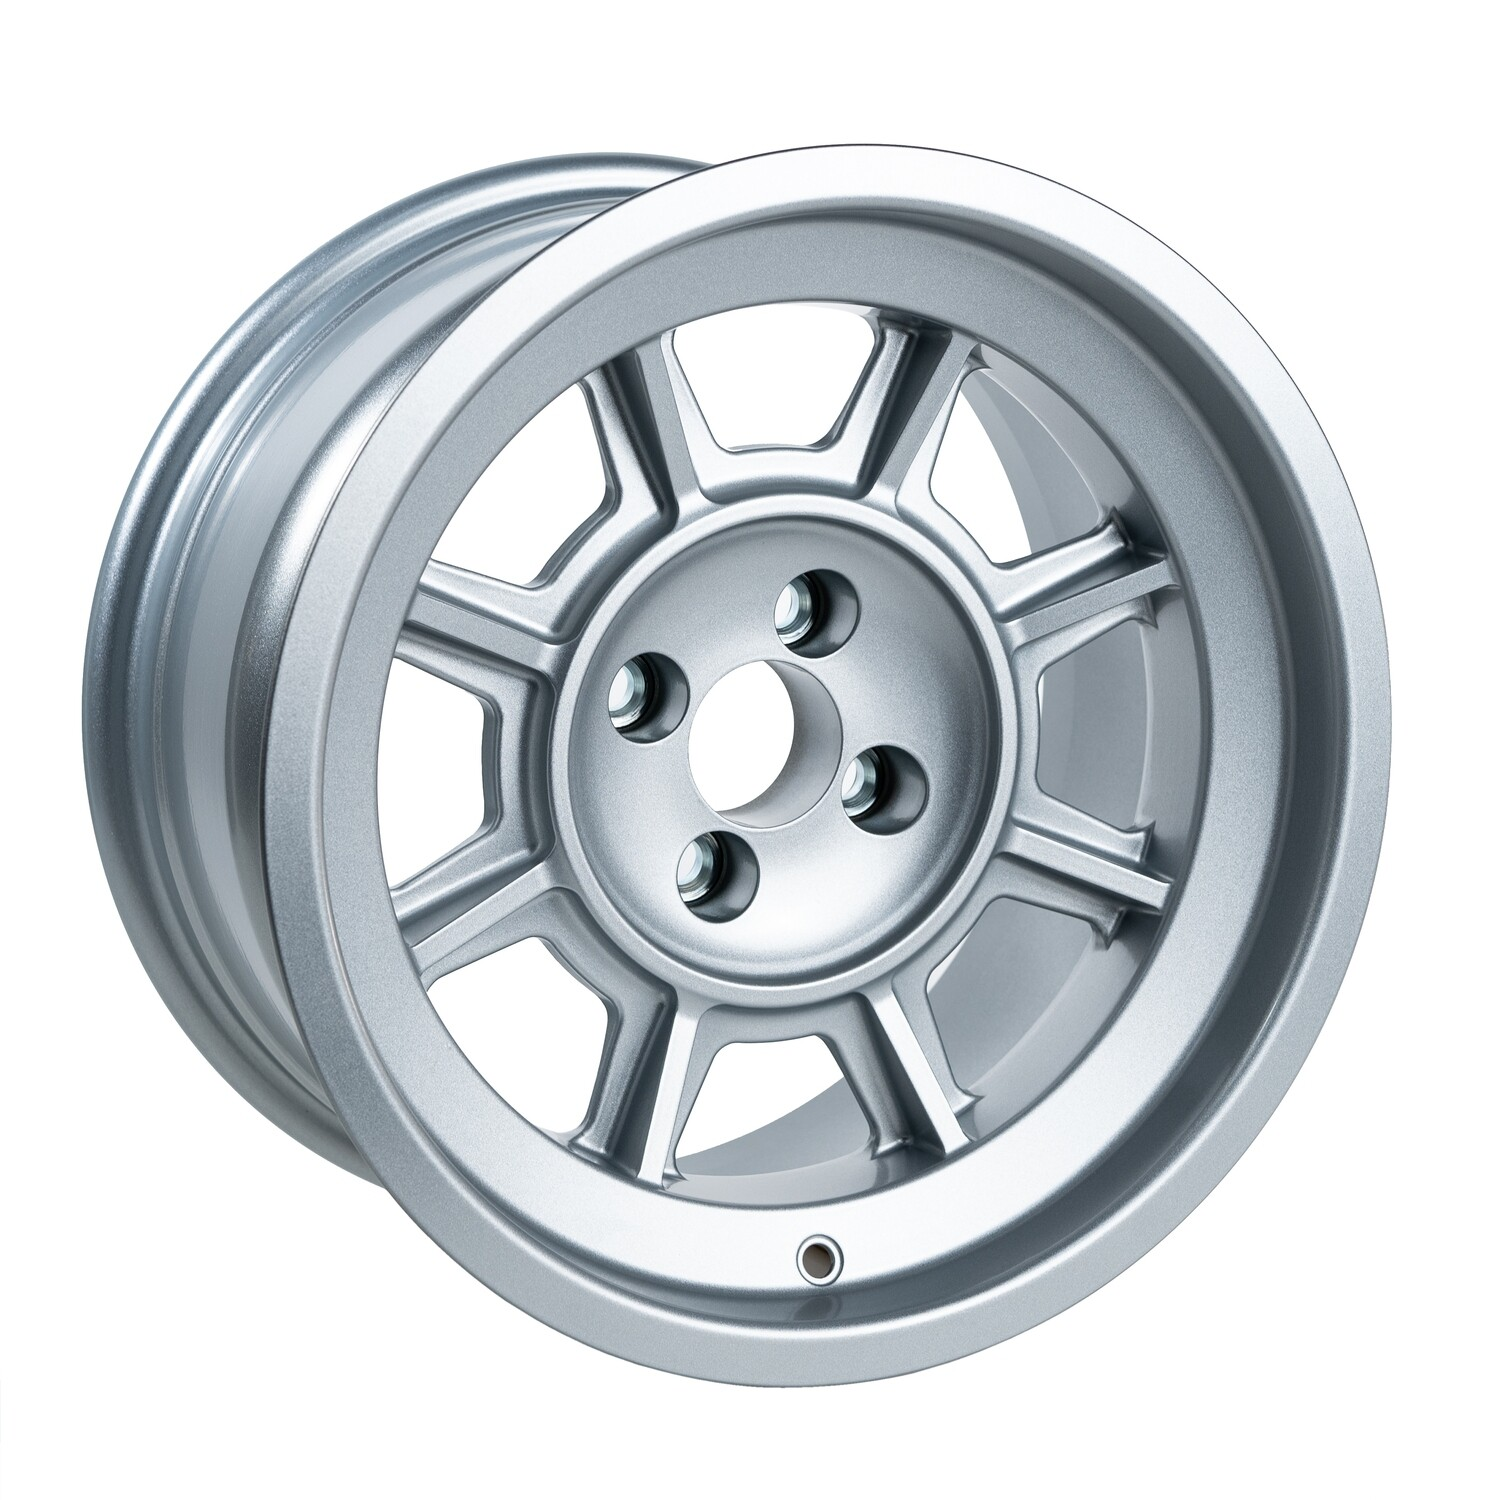 PAG1580F Satin Silver 15 x 8